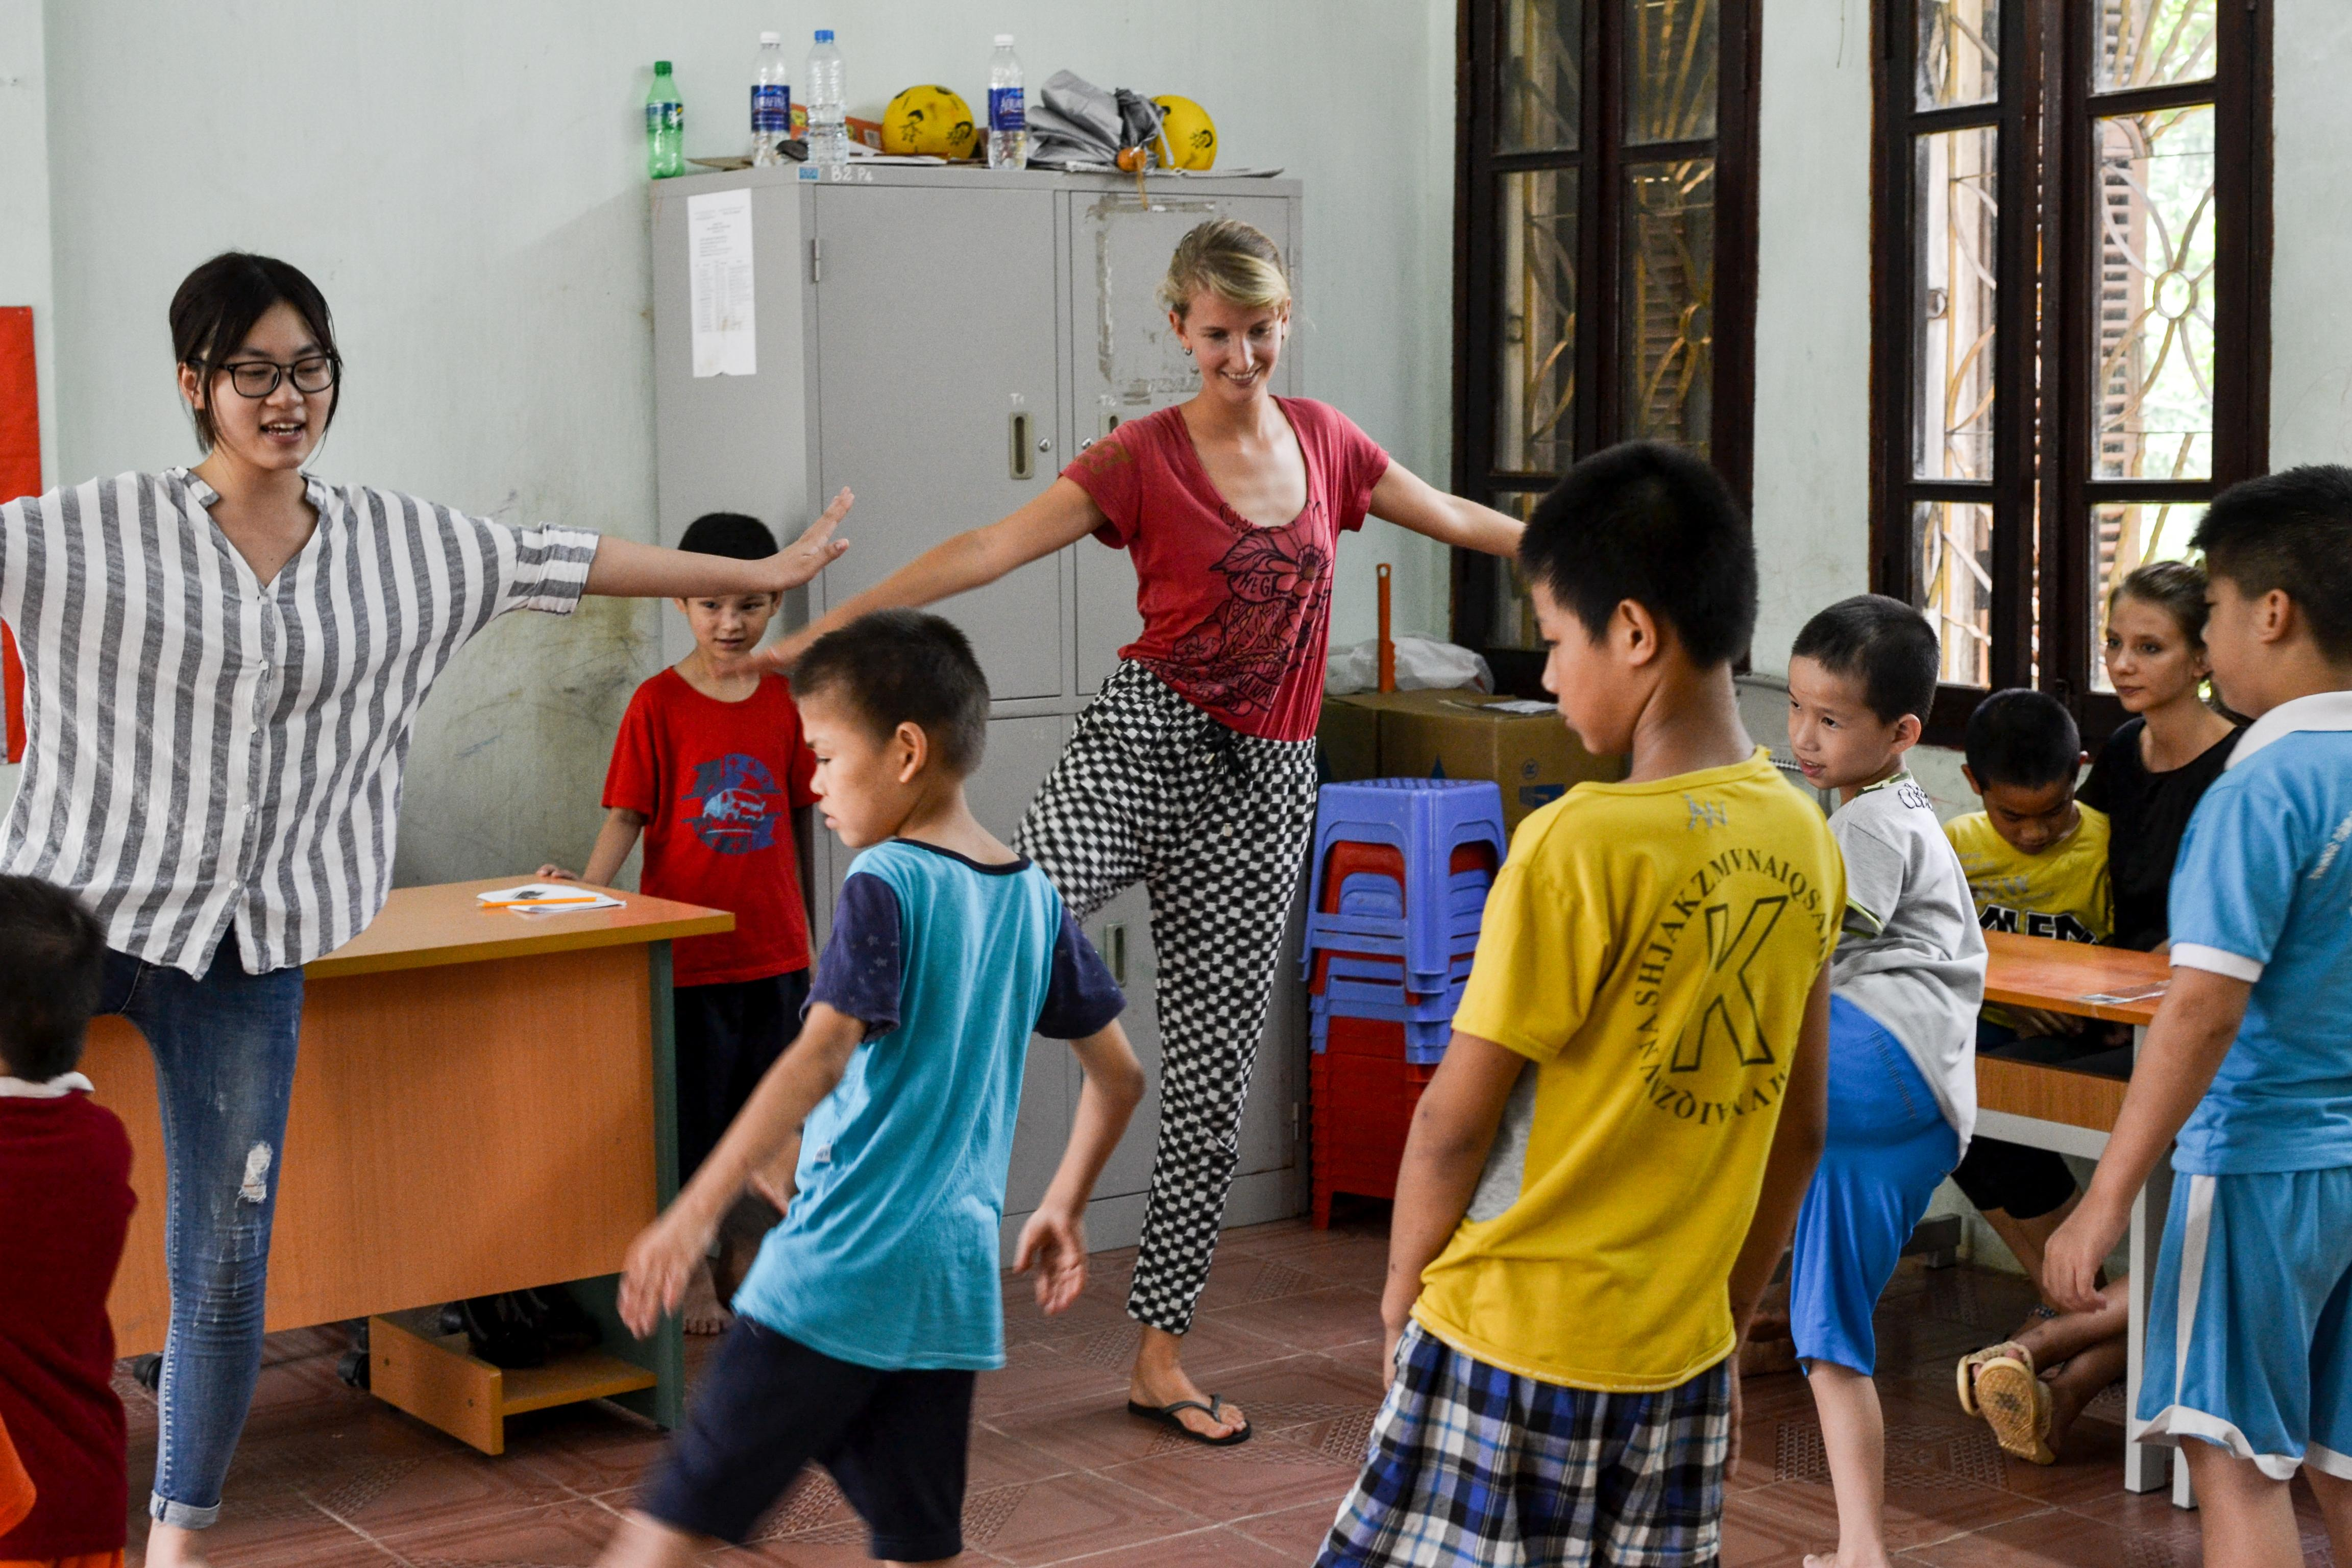 Projects Abroad volunteers demonstrate balancing exercises to a group of children at a care centre in Vietnam to develop co-ordination skills.